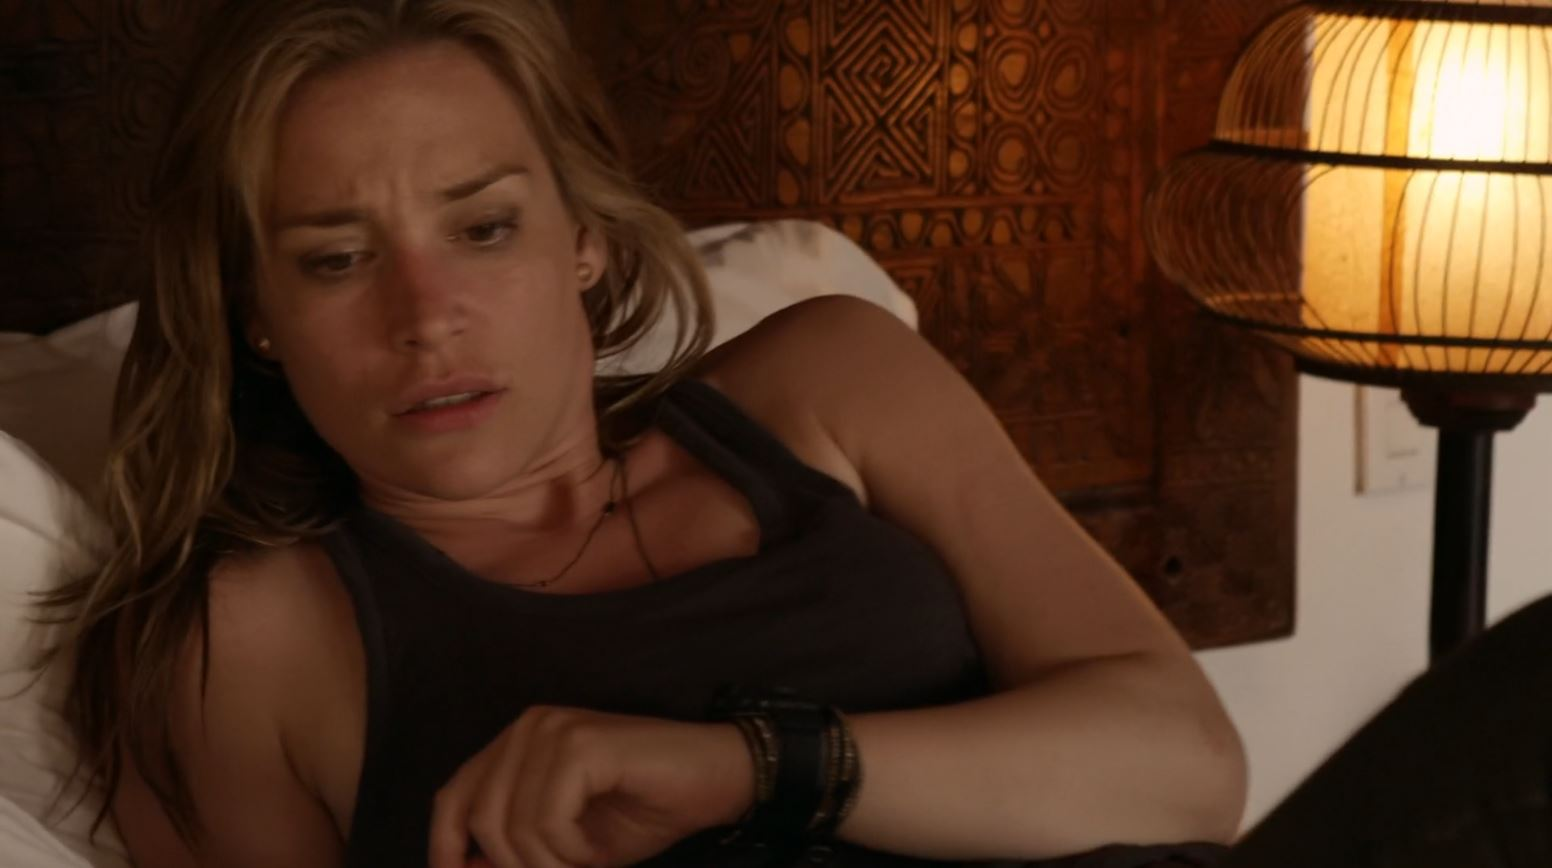 Covert Affairs S5Ep2 False Skorpion Review - Annie Walker (Piper Perabo) waking up after seizure